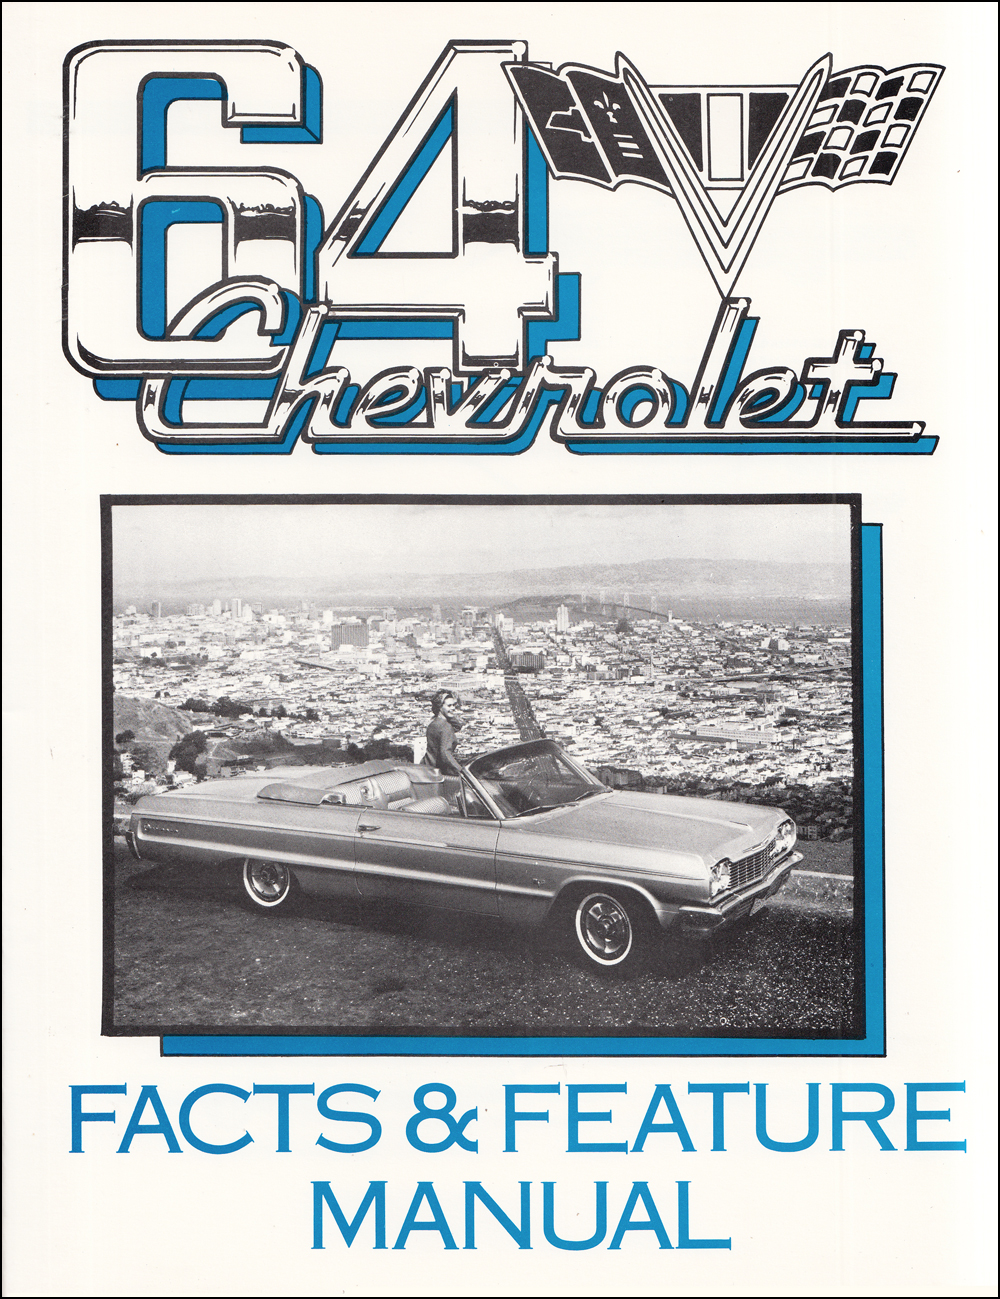 1964 Chevrolet Car Finger Tip Facts Book Reprint Bel Air Biscayne Impala